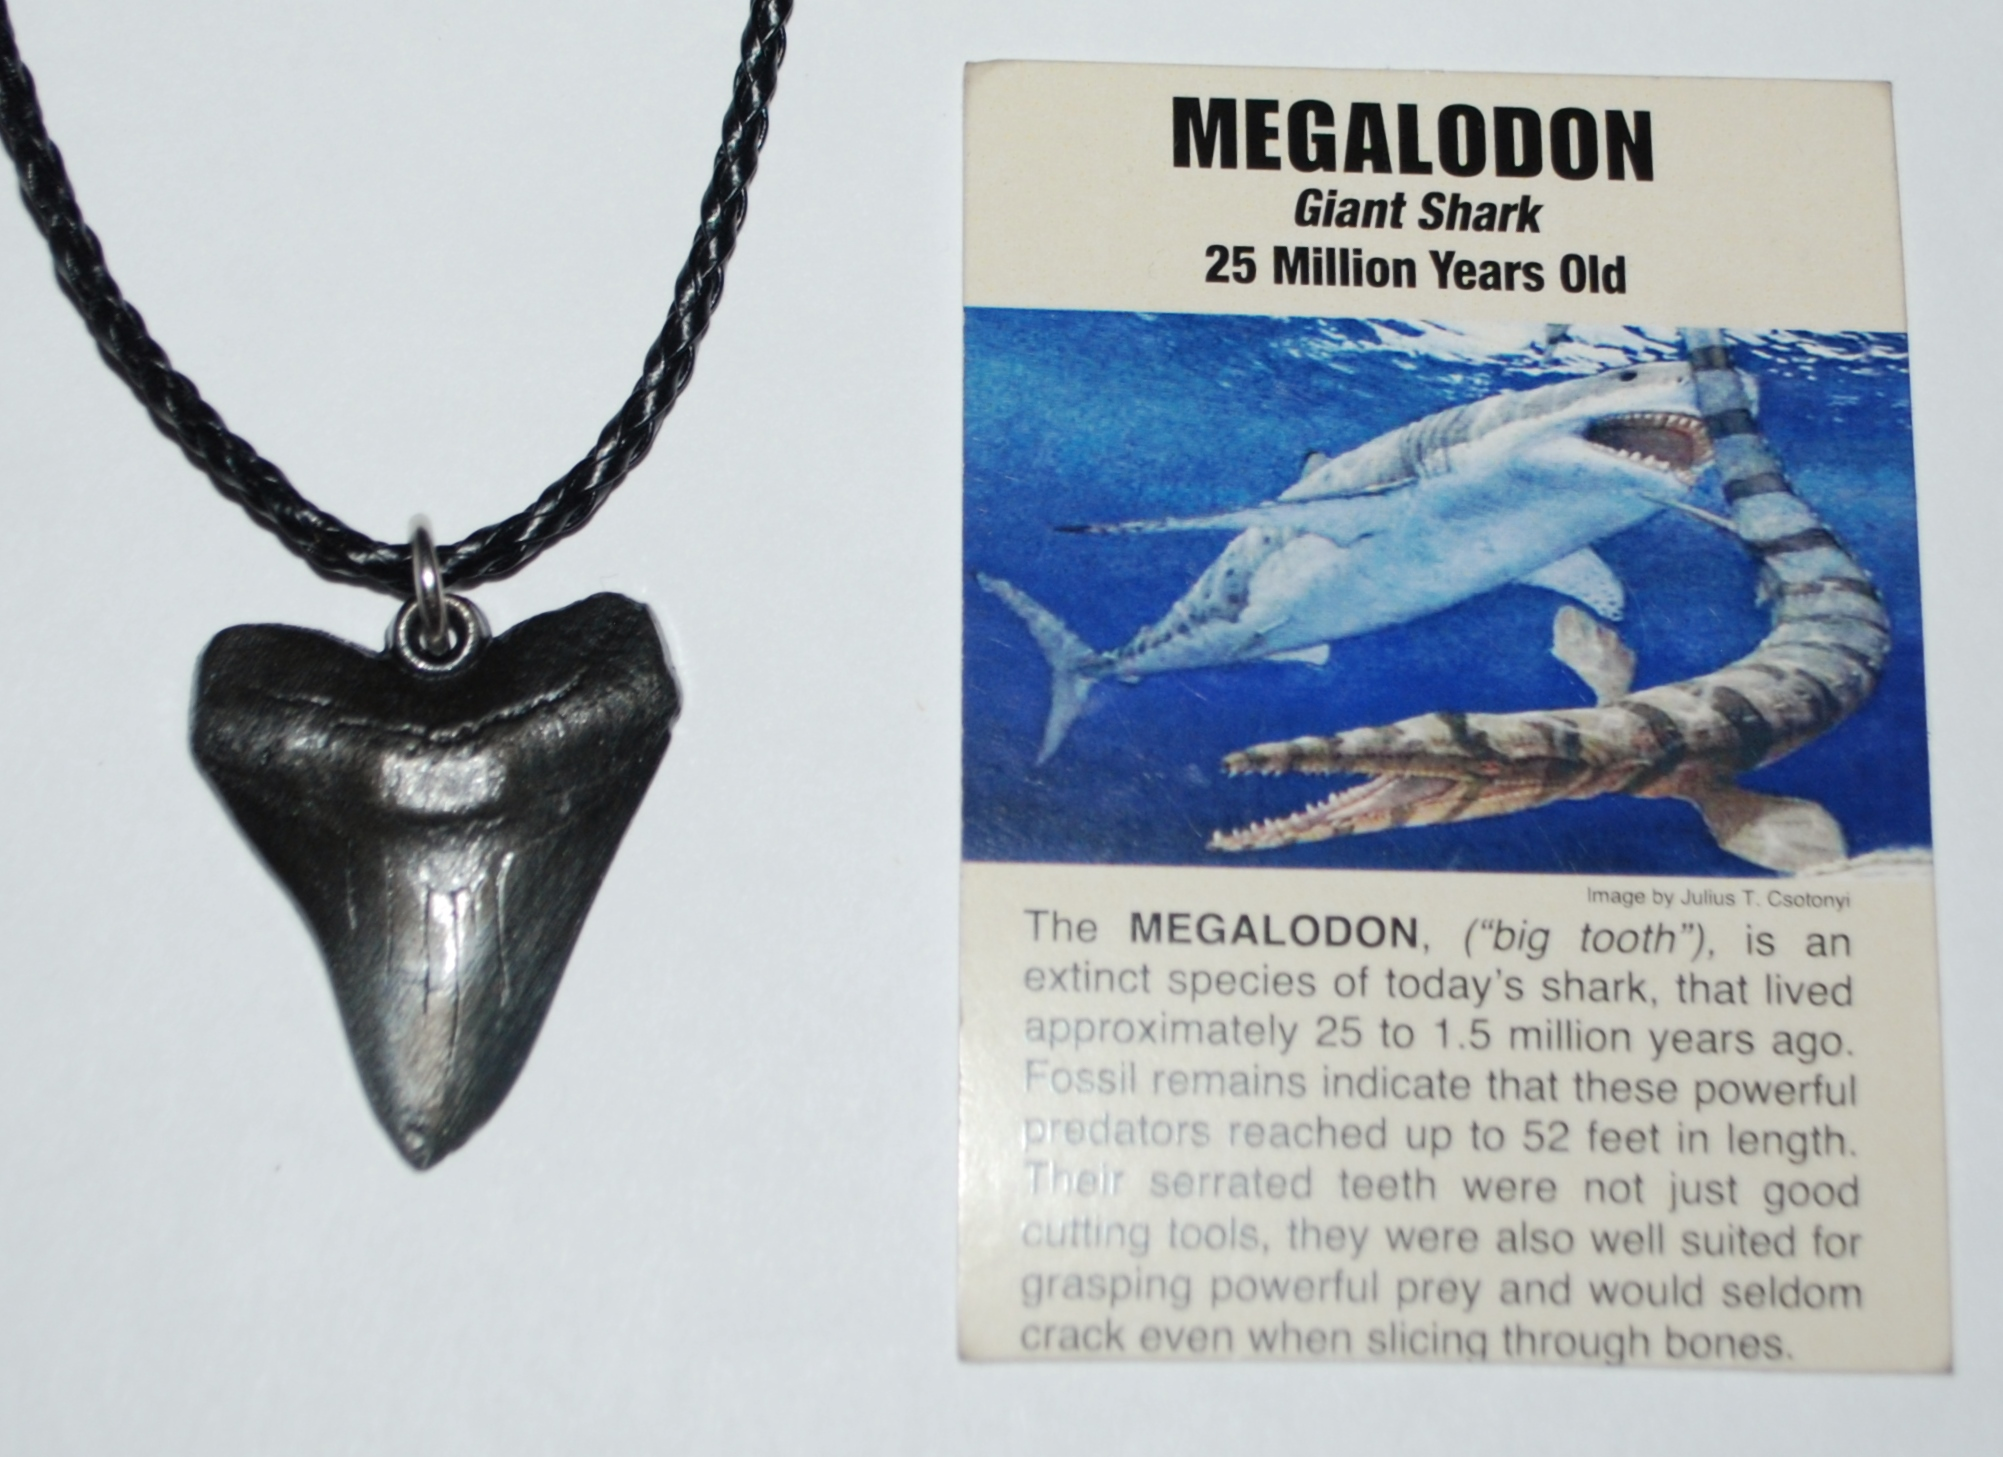 Show me a picture of a megalodon tooth